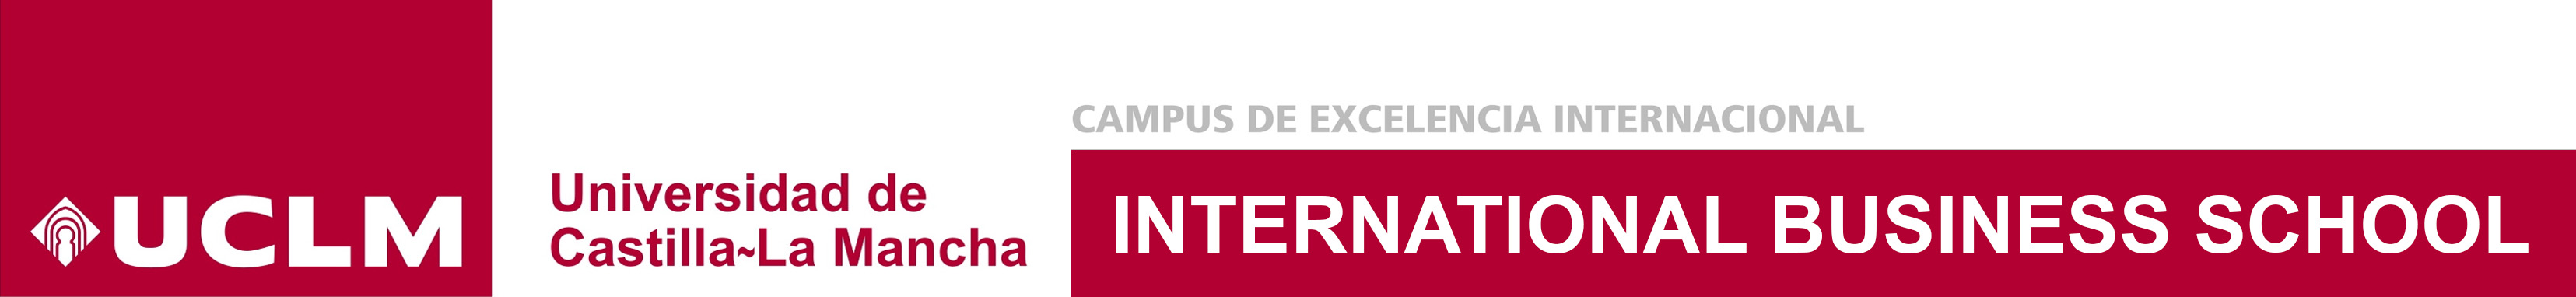 UCLM - International Business School